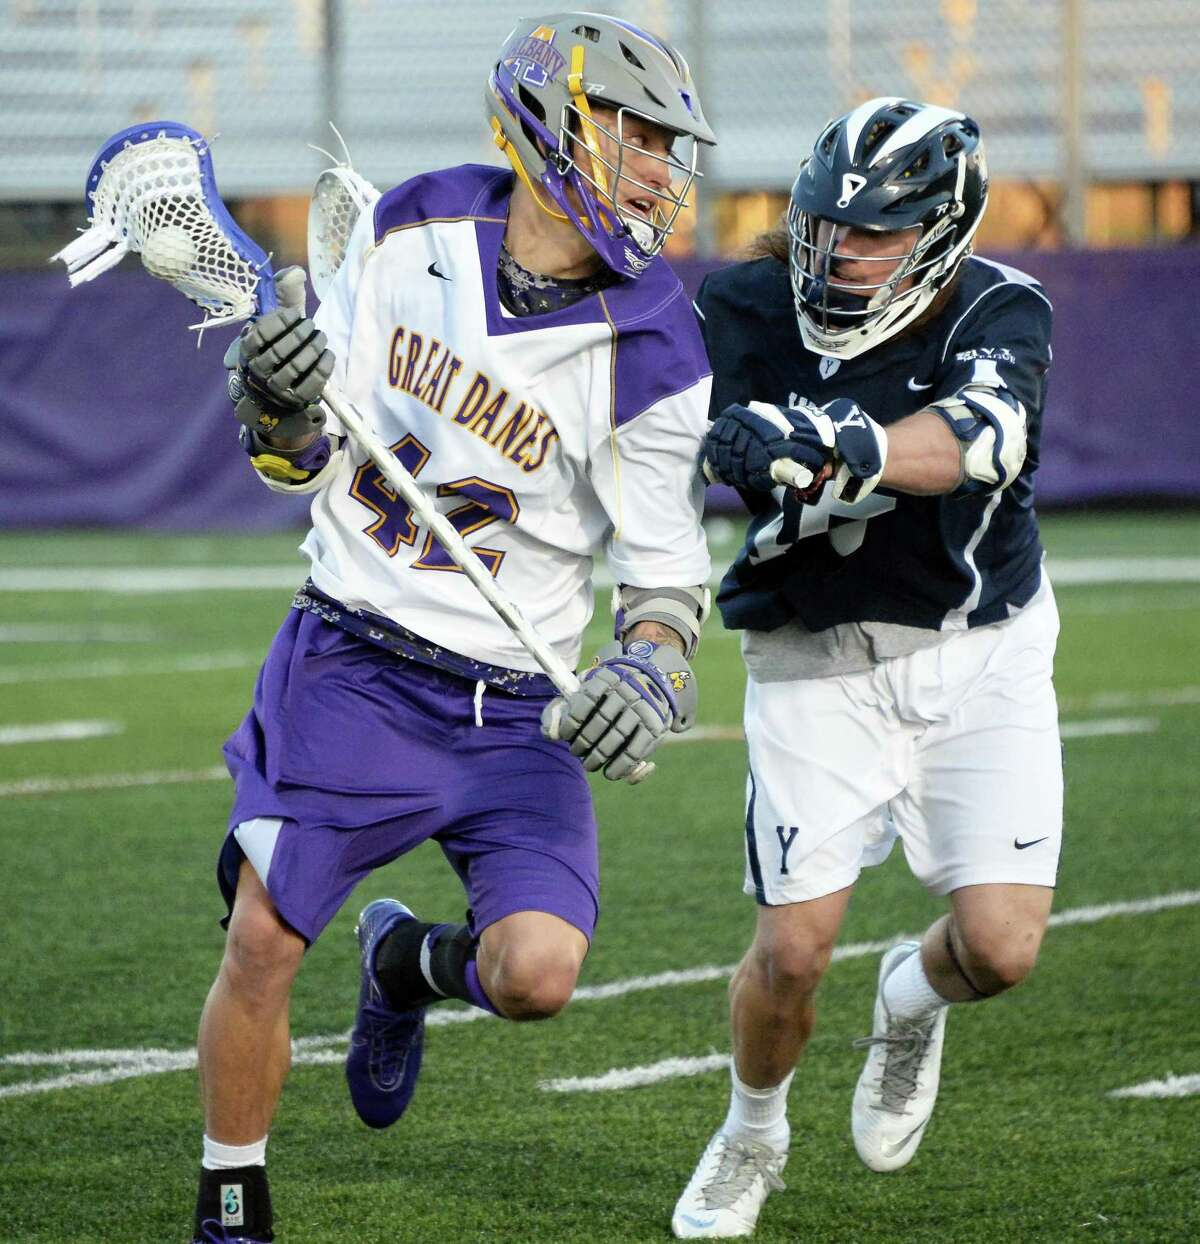 UAlbany's #42 Ky Tarbell, left, and Yale's #45 Jason Alessi tangle during Saturday's lacrosse game April 18, 2015 in Albany, NY. (John Carl D'Annibale / Times Union)